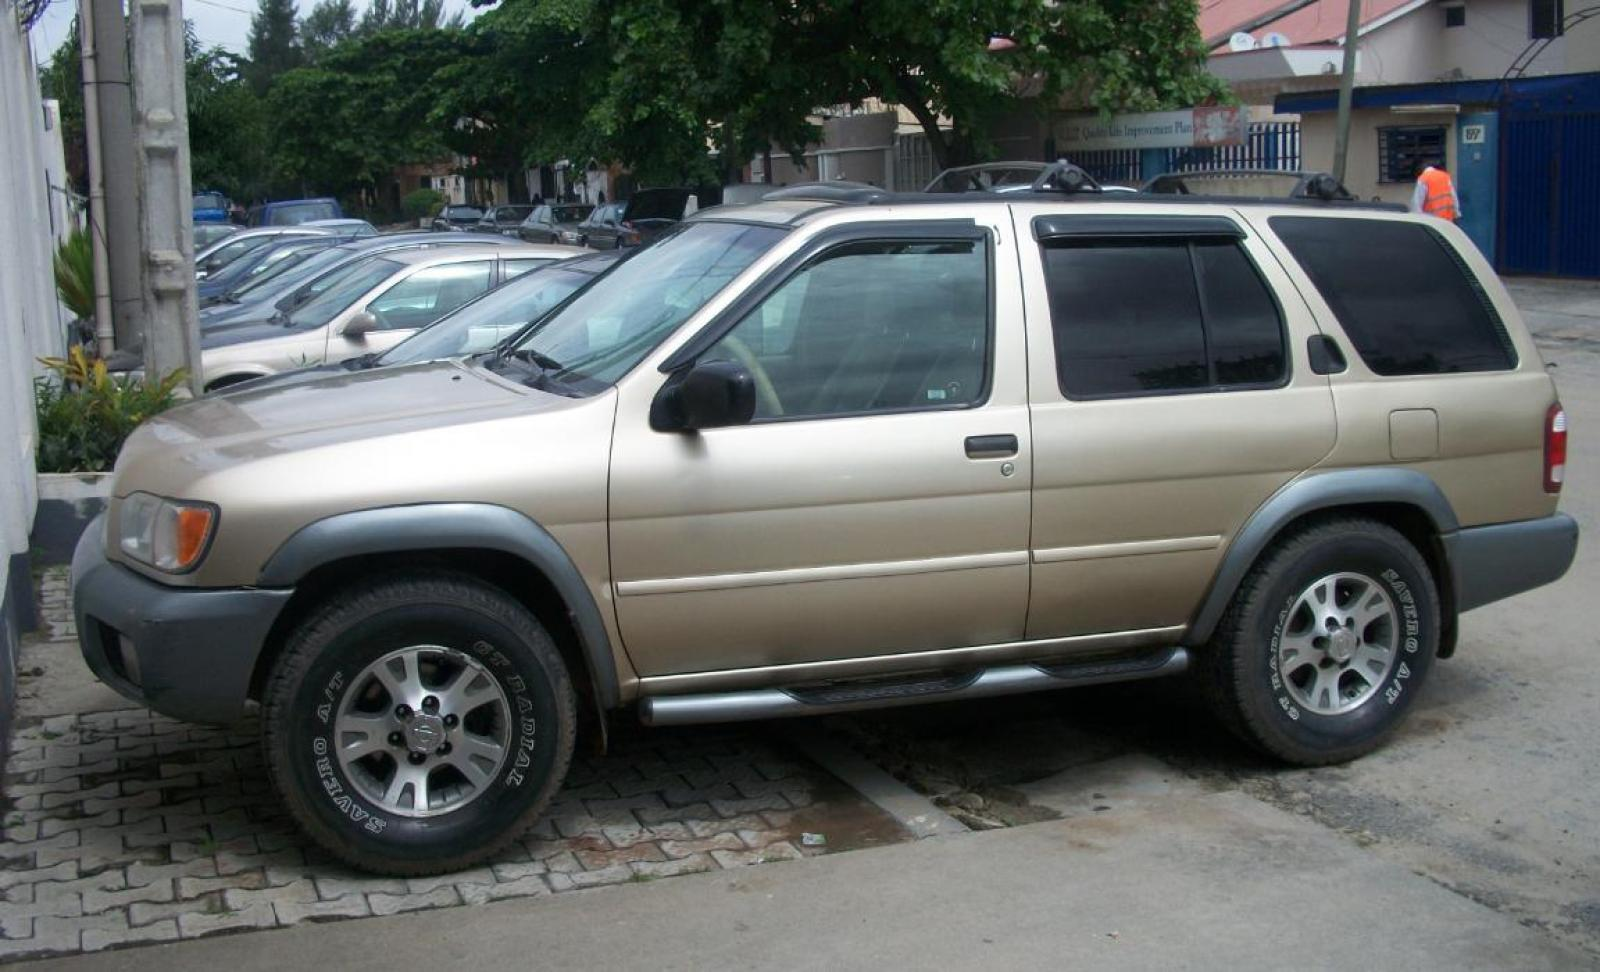 2000 Nissan Pathfinder #1 800 1024 1280 1600 origin